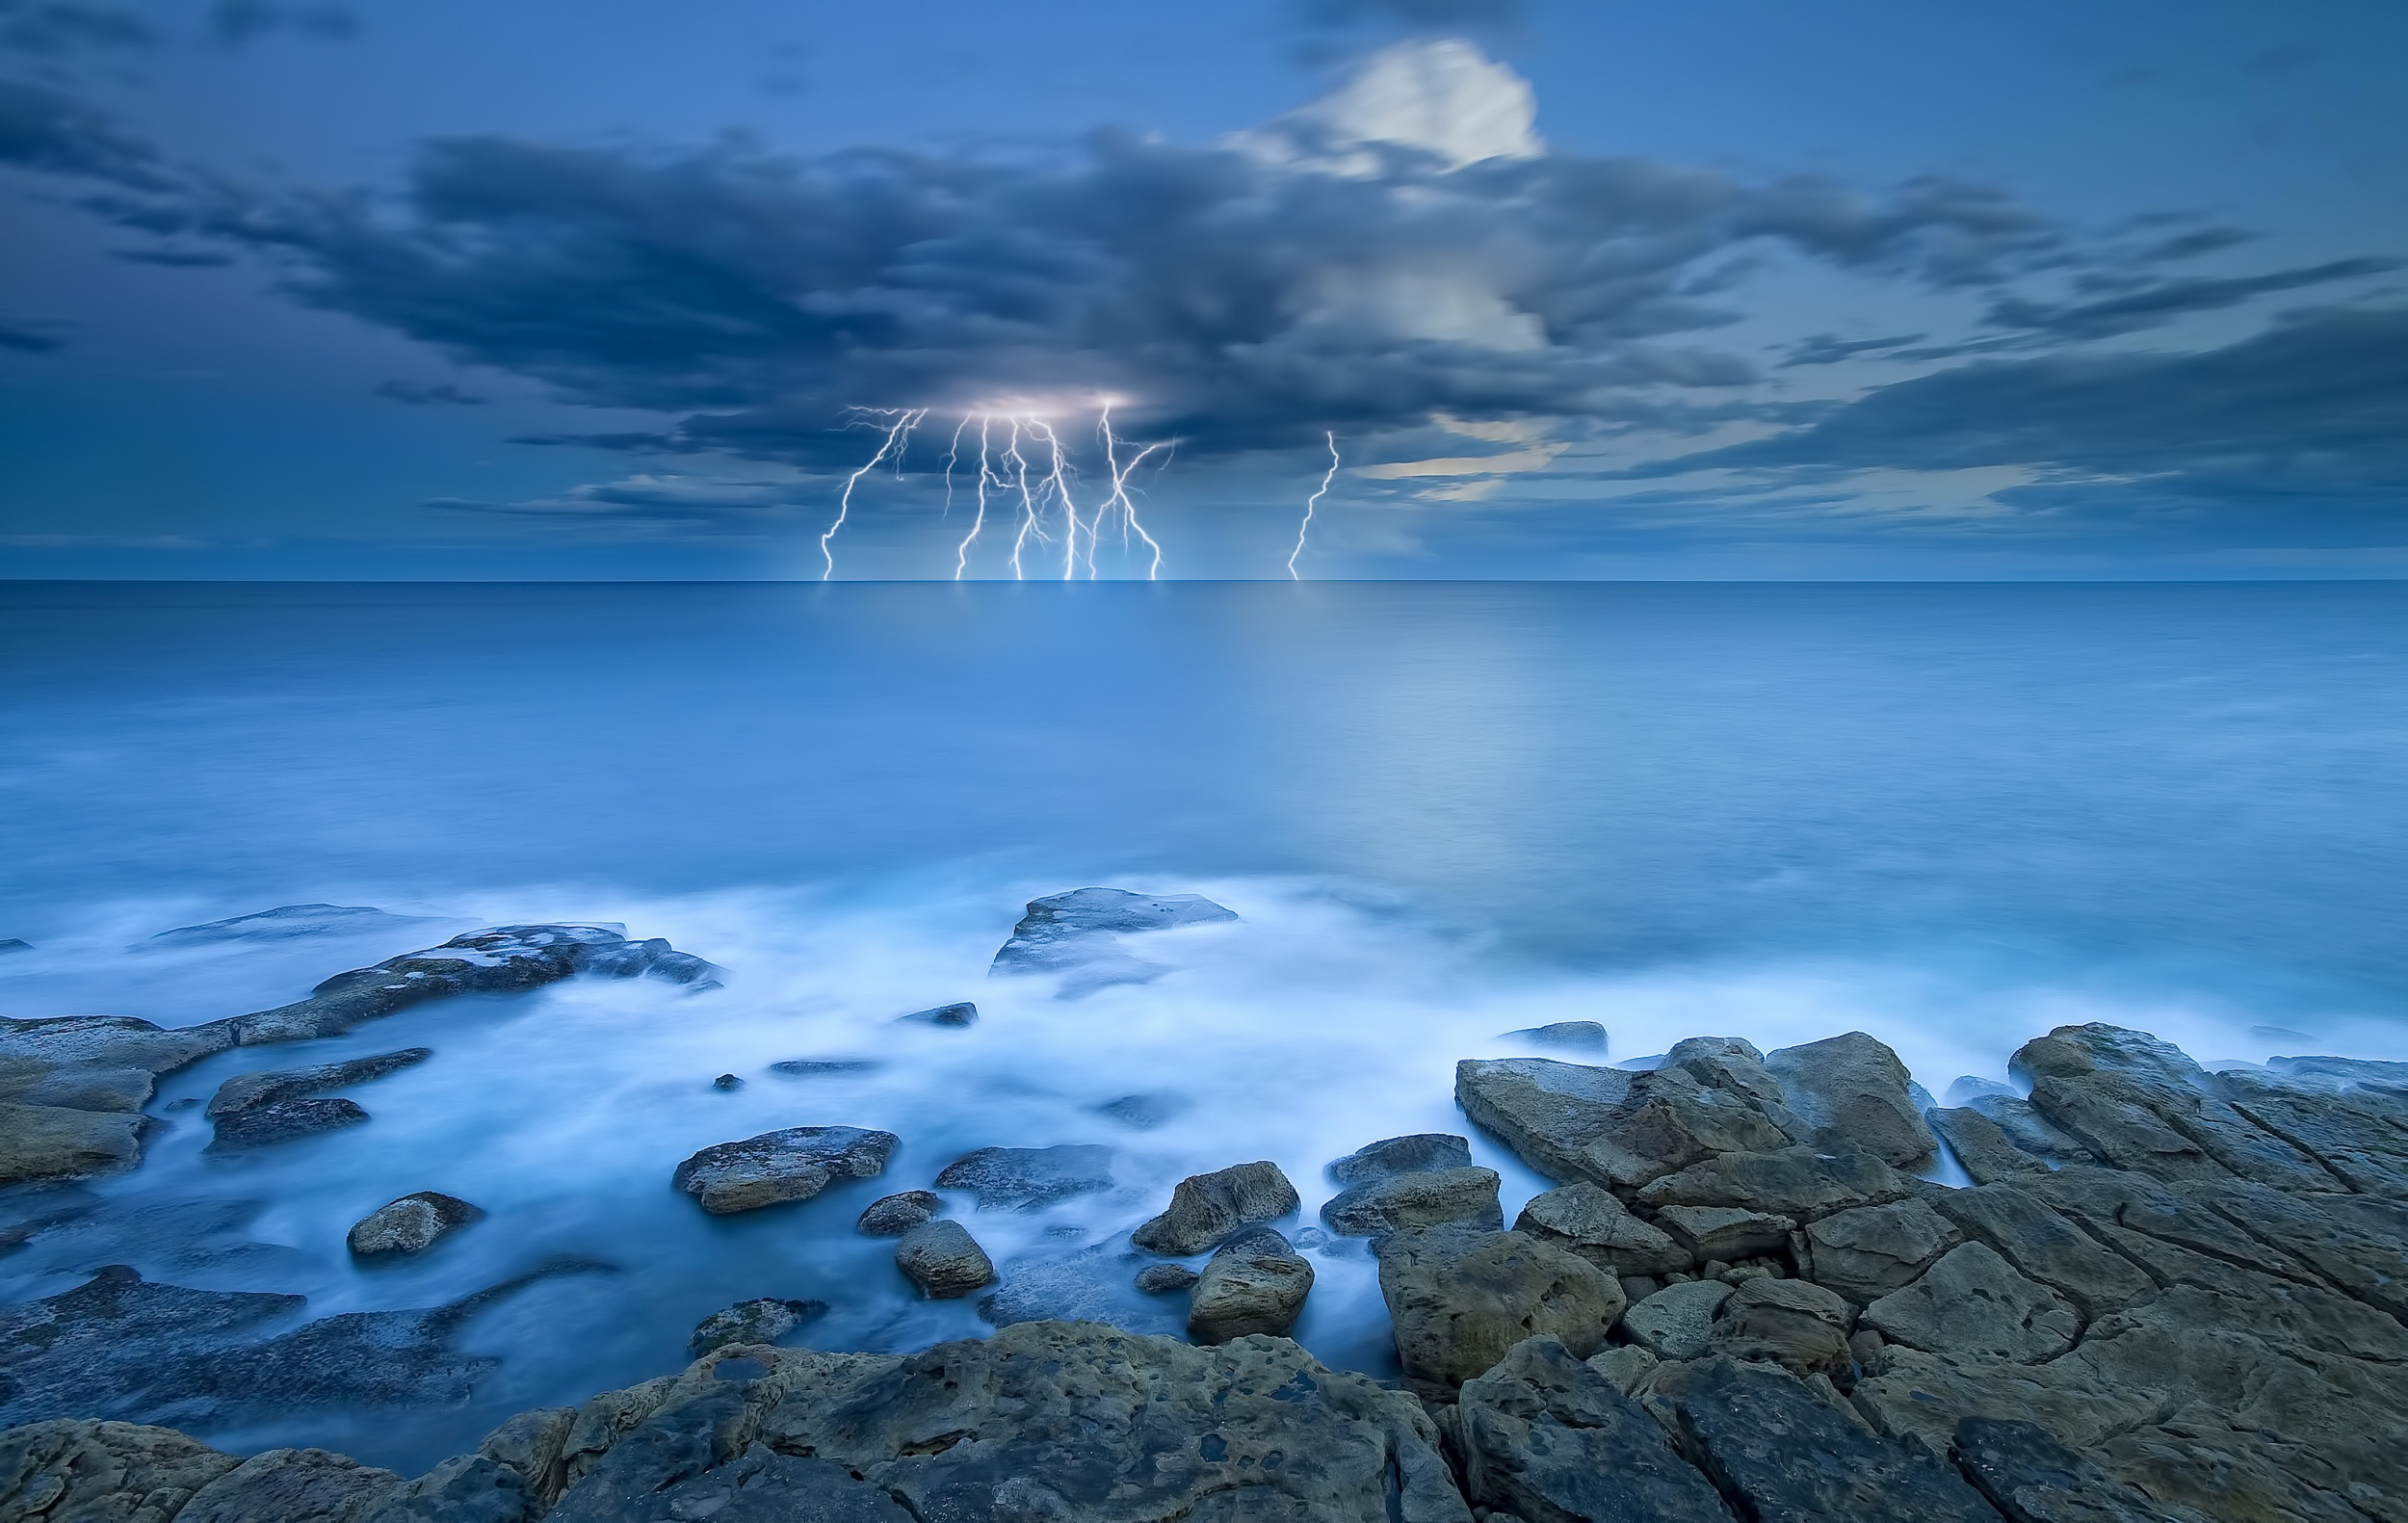 Storm Wallpapers Pictures Images 2500x1581